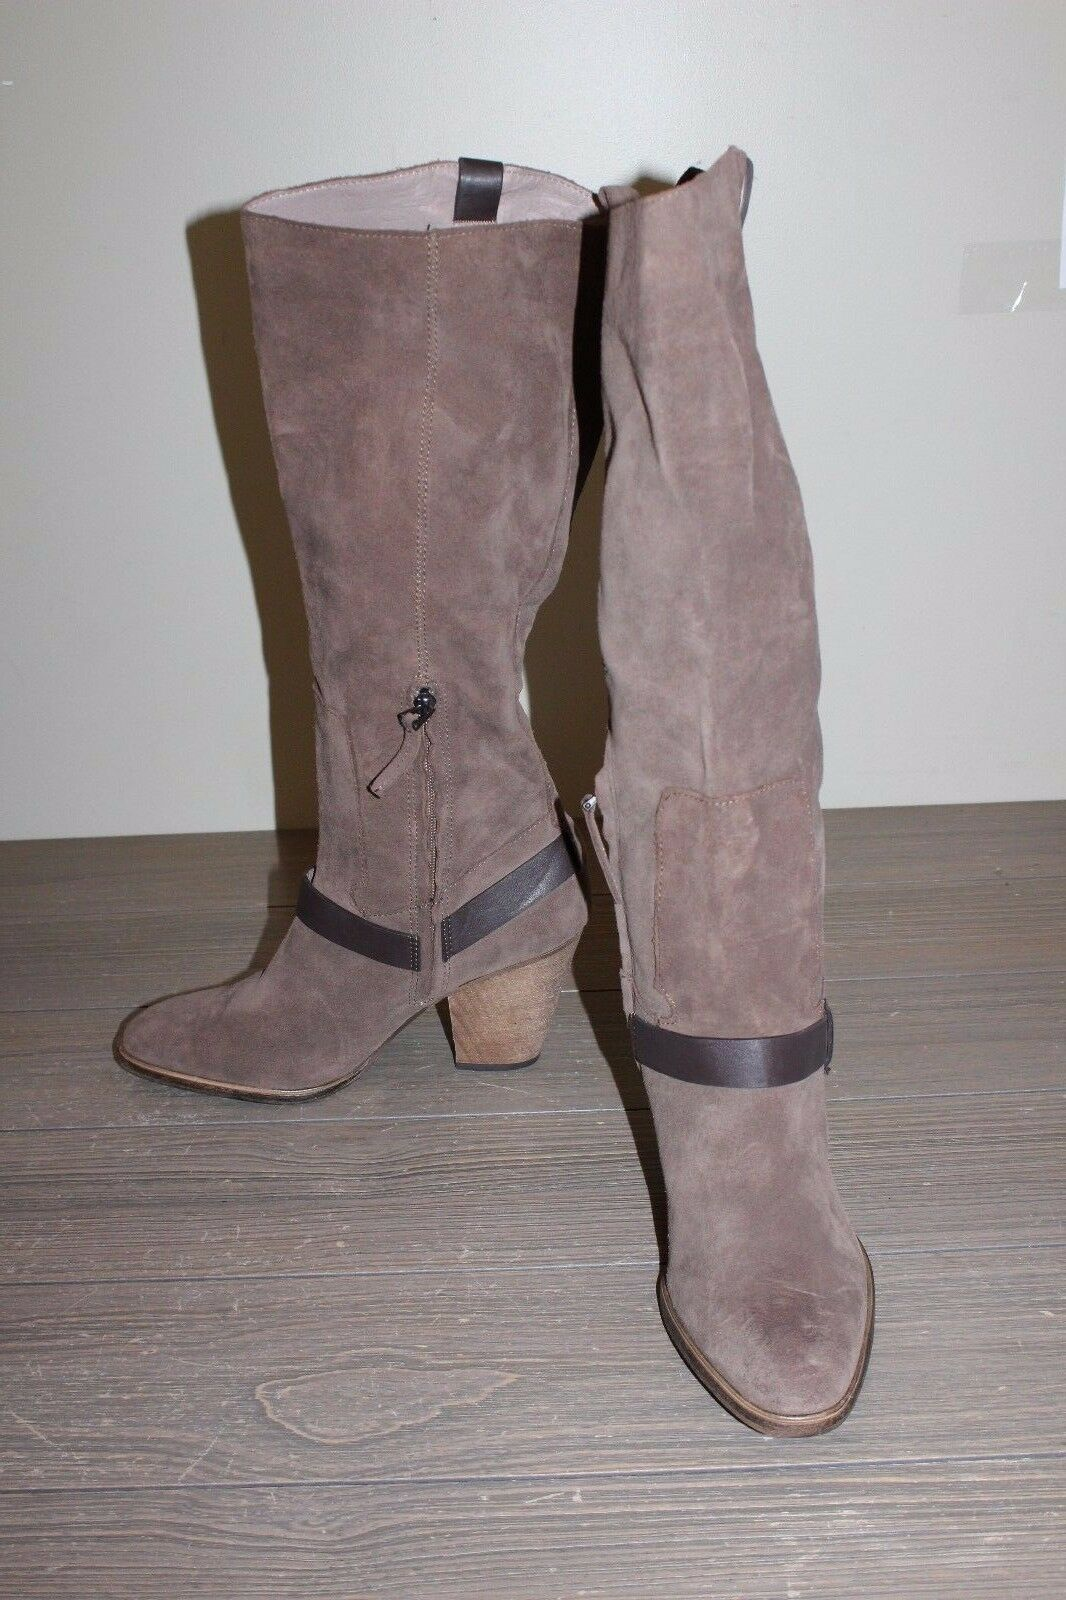 Dolce Vita Cliff Over the Knee Boots-Women's size 11 Brown